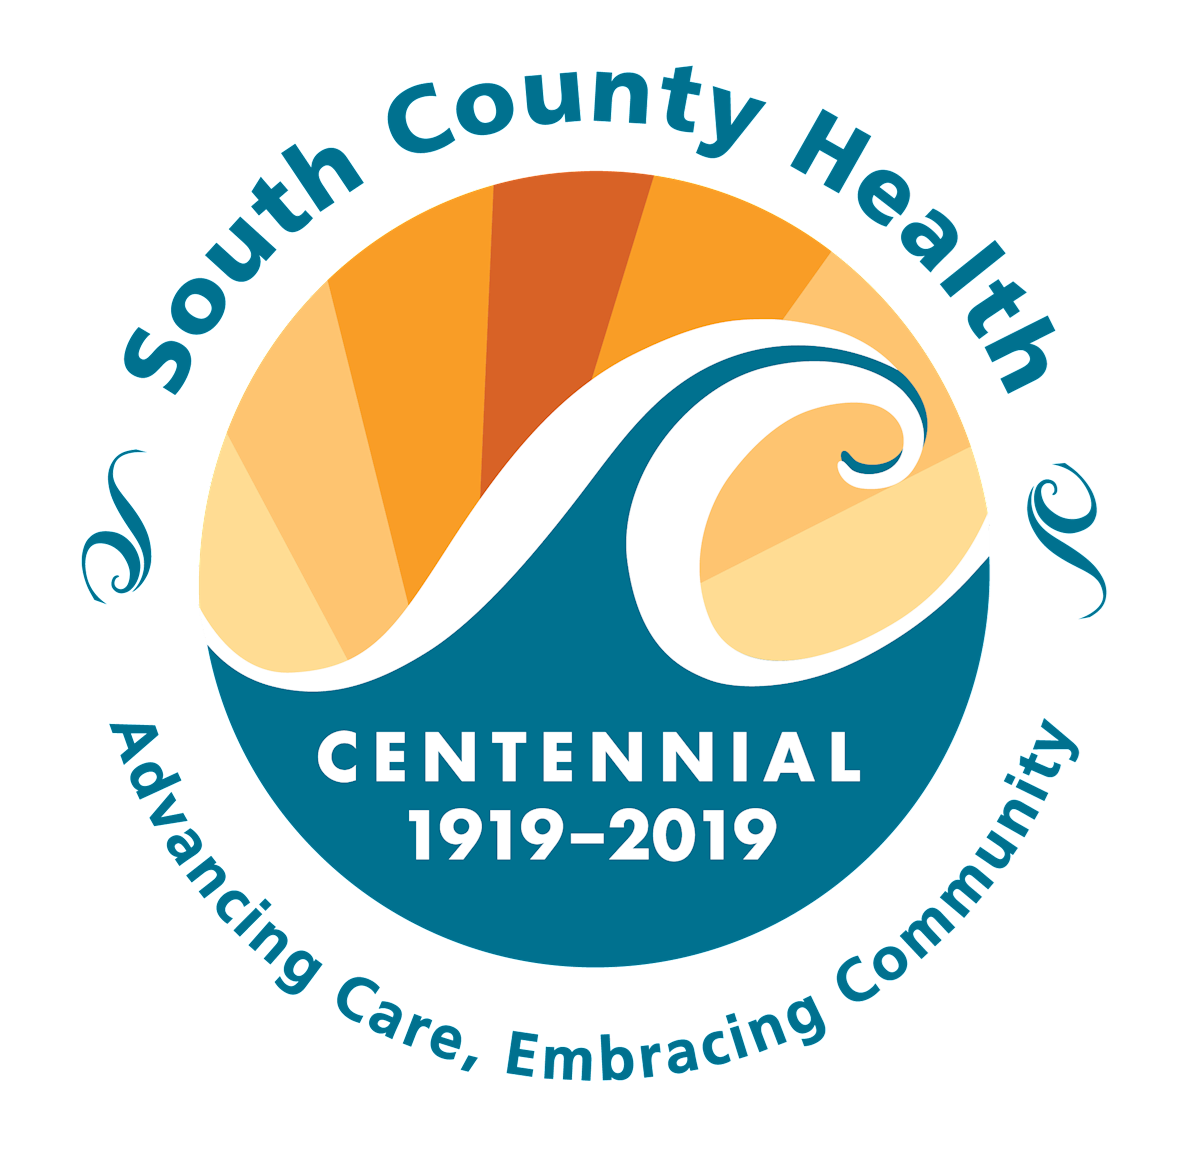 South County Health unveils Centennial timeline